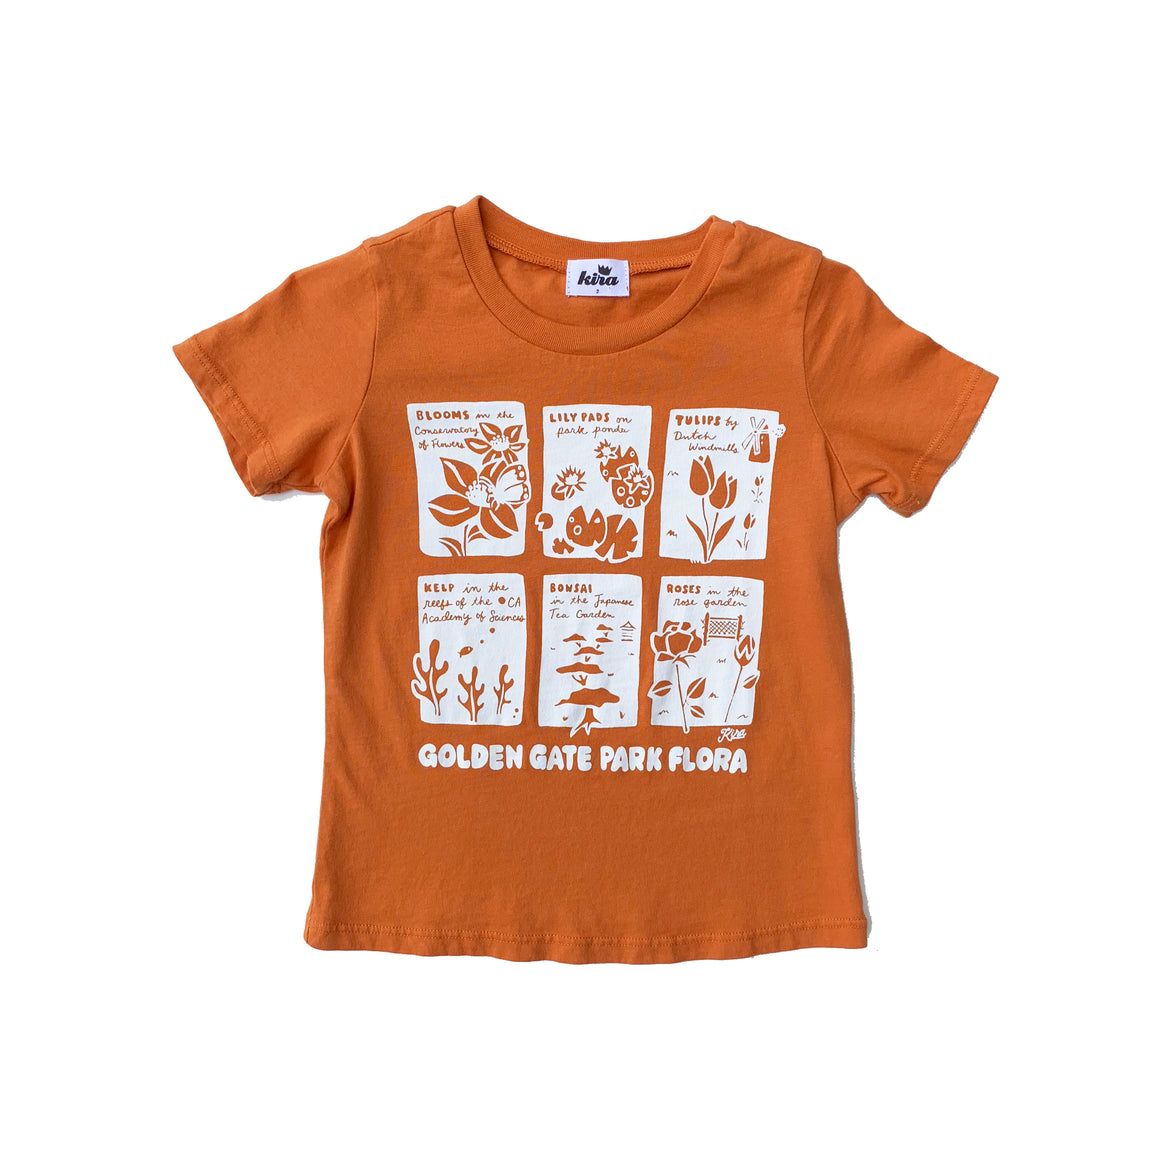 Golden Gate Park Flora Graphic T-shirt, Copper